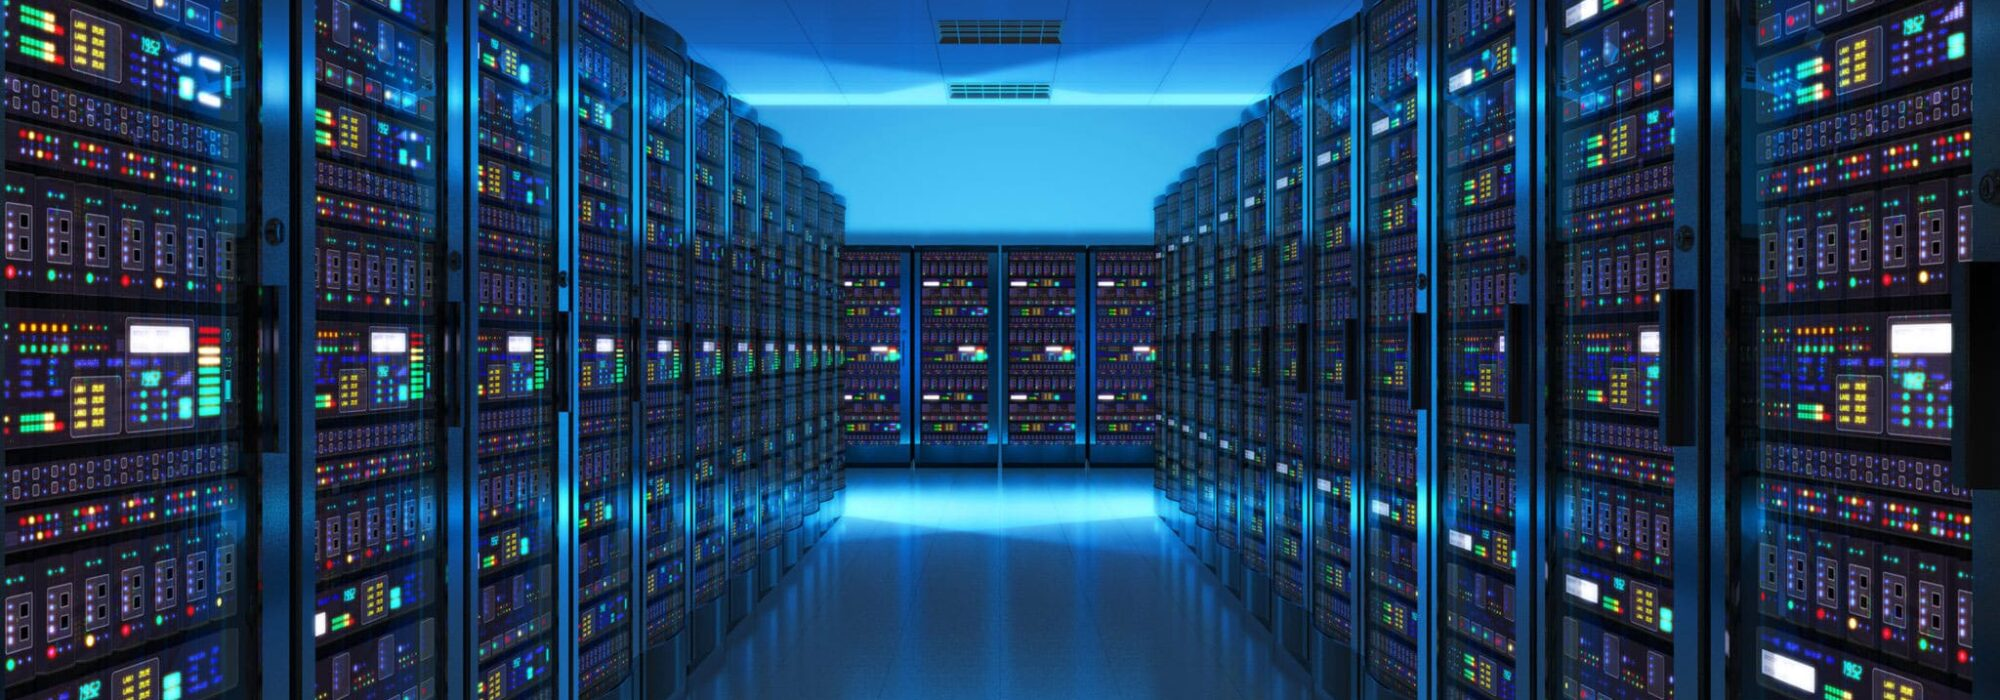 Server room interior in datacenter in blue light